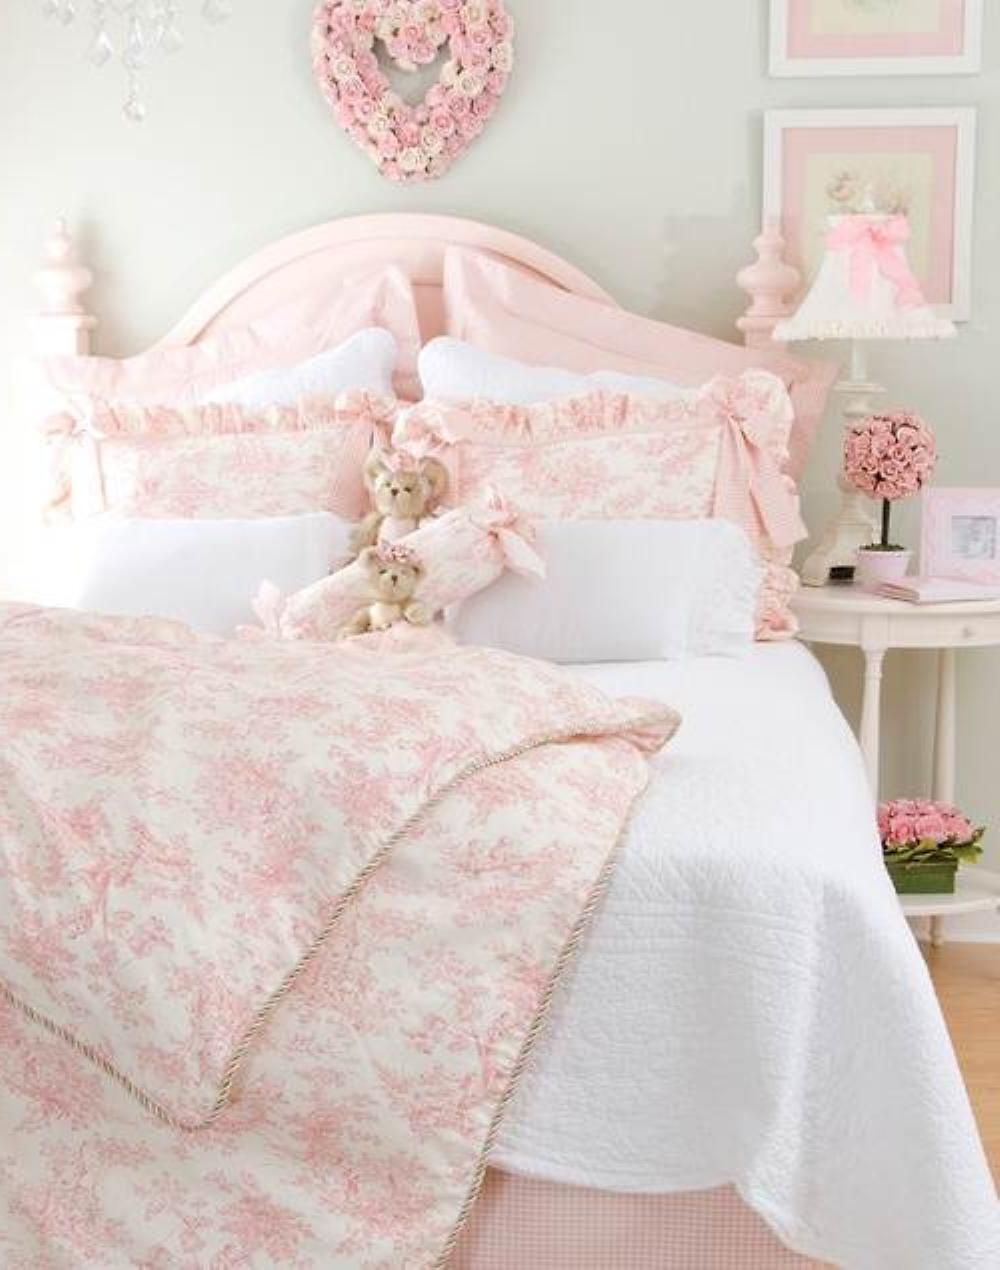 Cute and Fun Paint Ideas for Girls Bedroom